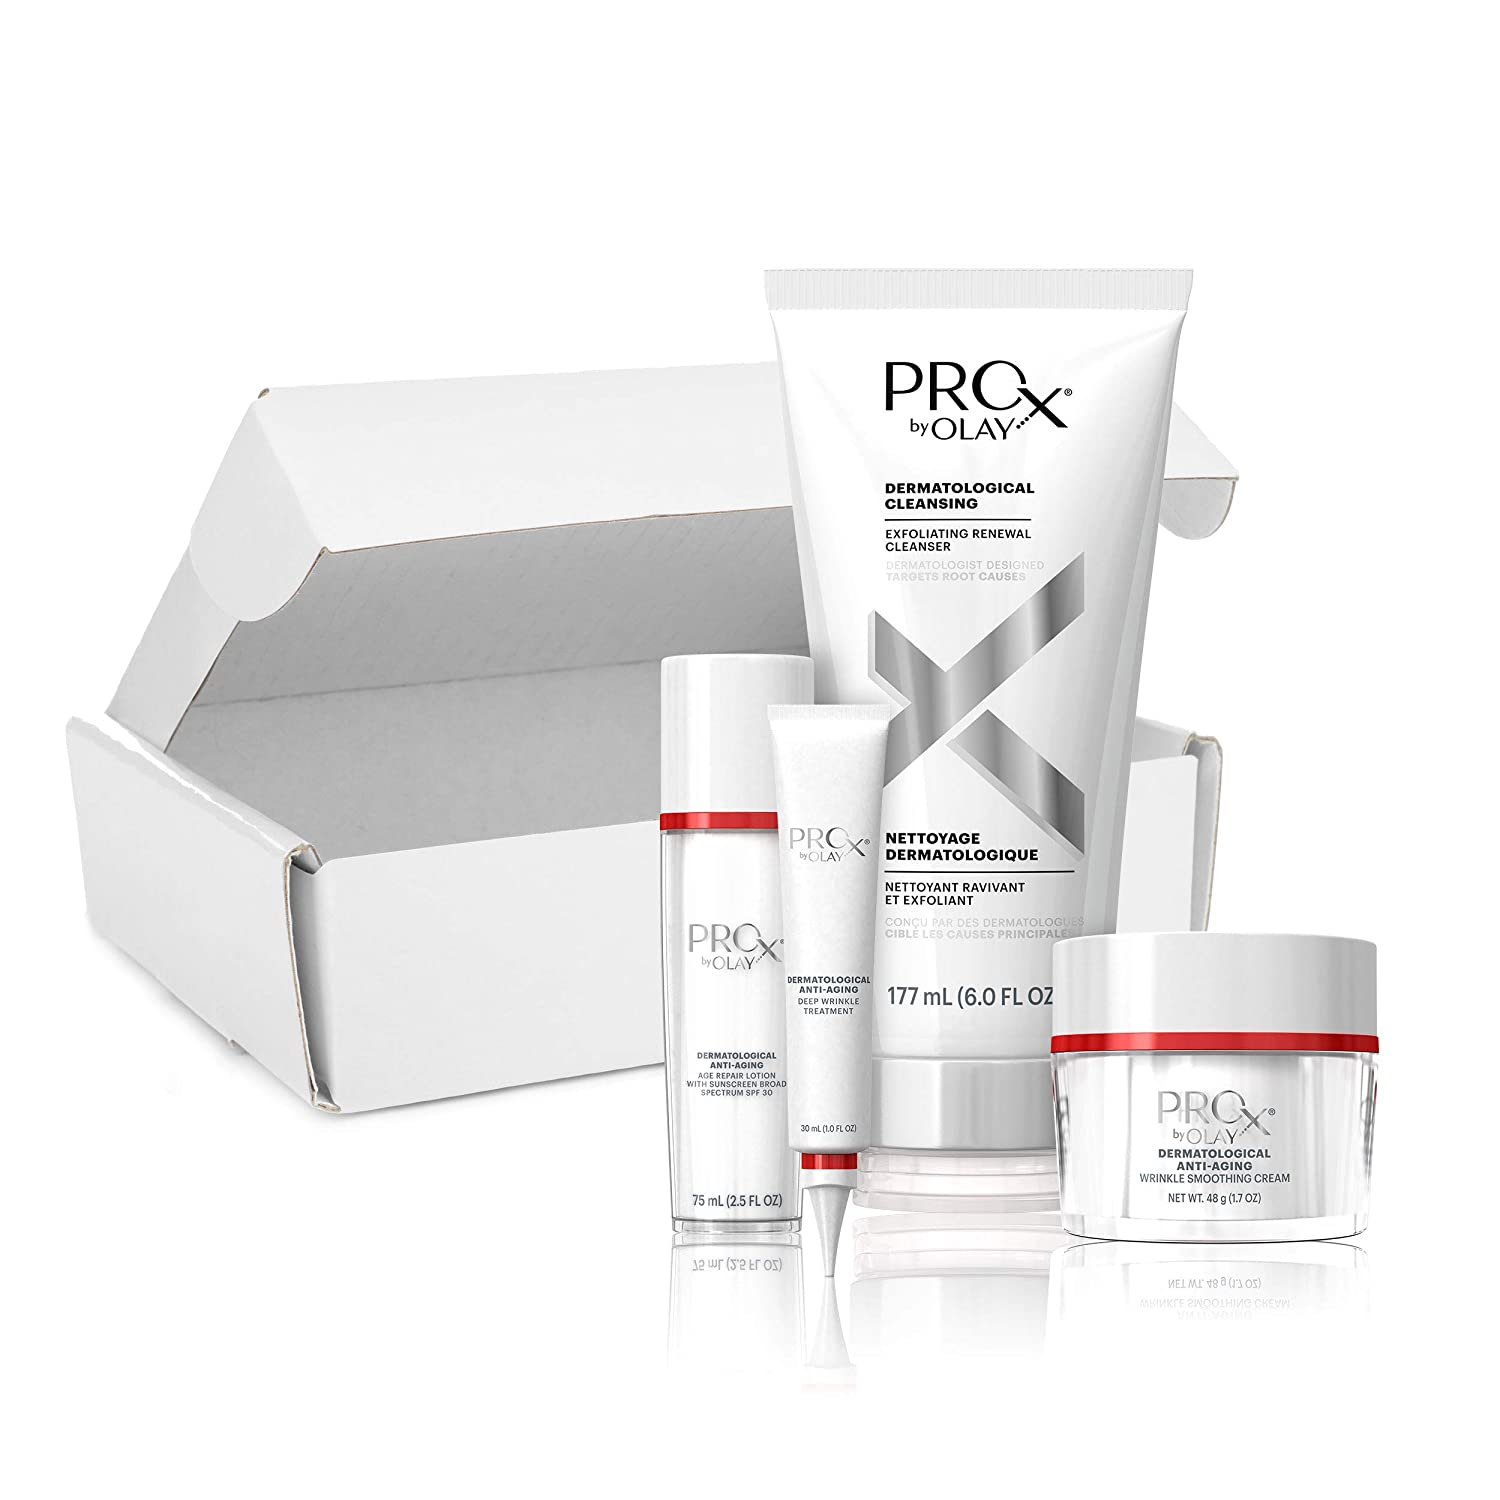 Day + Night Face Protocol Kit by Olay Pro-X, Gift Set for Women, Dermatologist-Designed, 12 years younger in 4 weeks